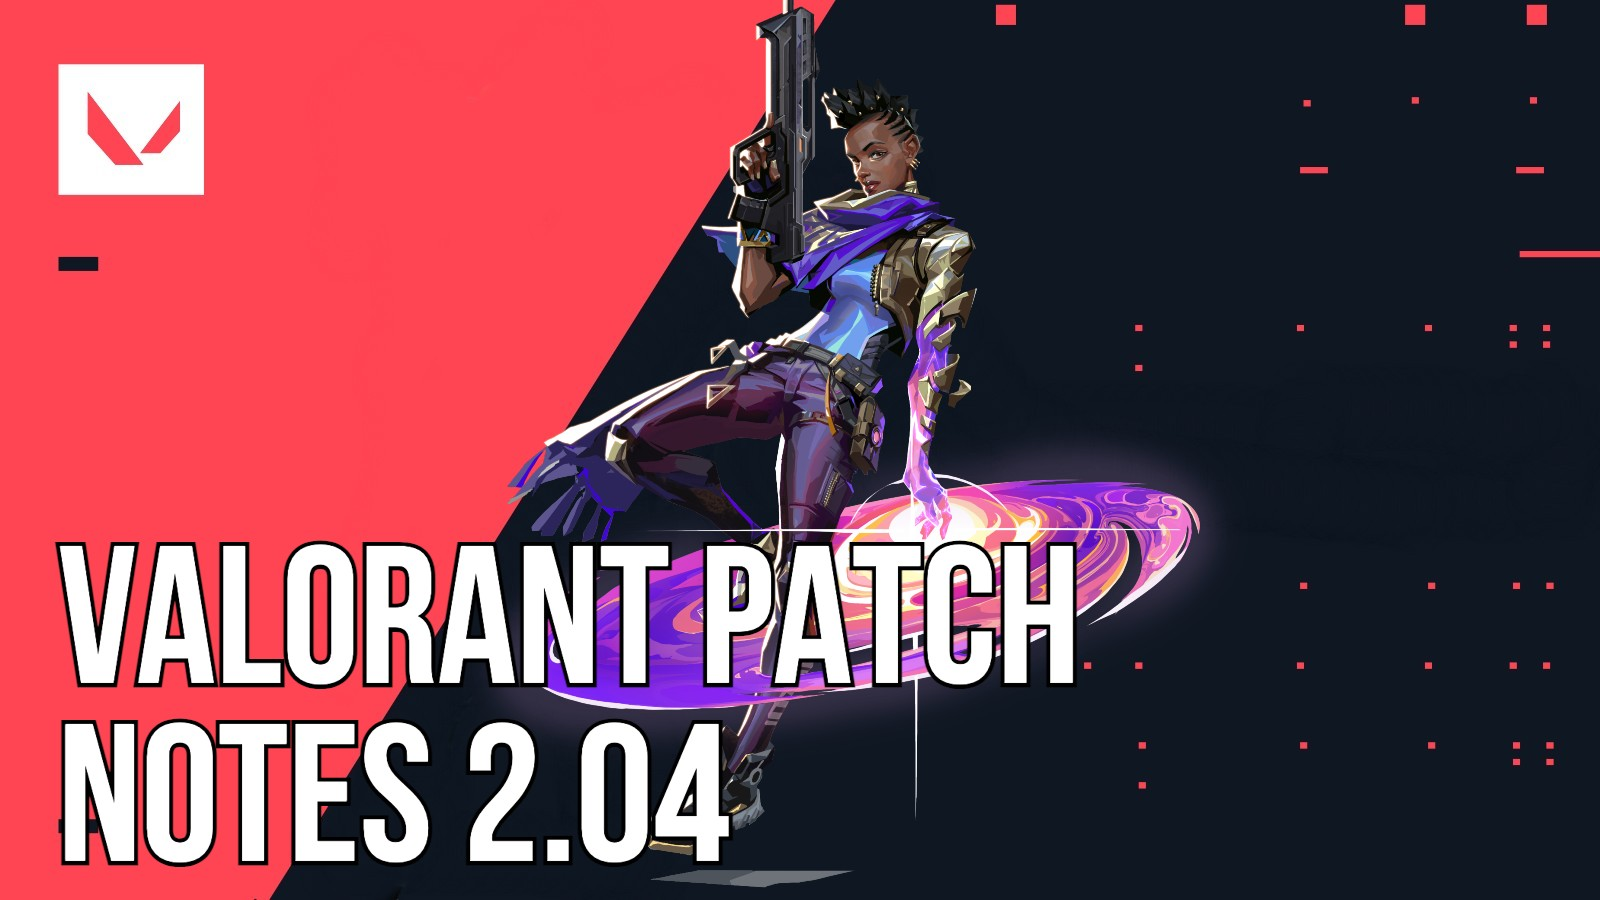 Valorant update 2.04 patch notes: Astra, Escalation changes, rank updates - Dexerto